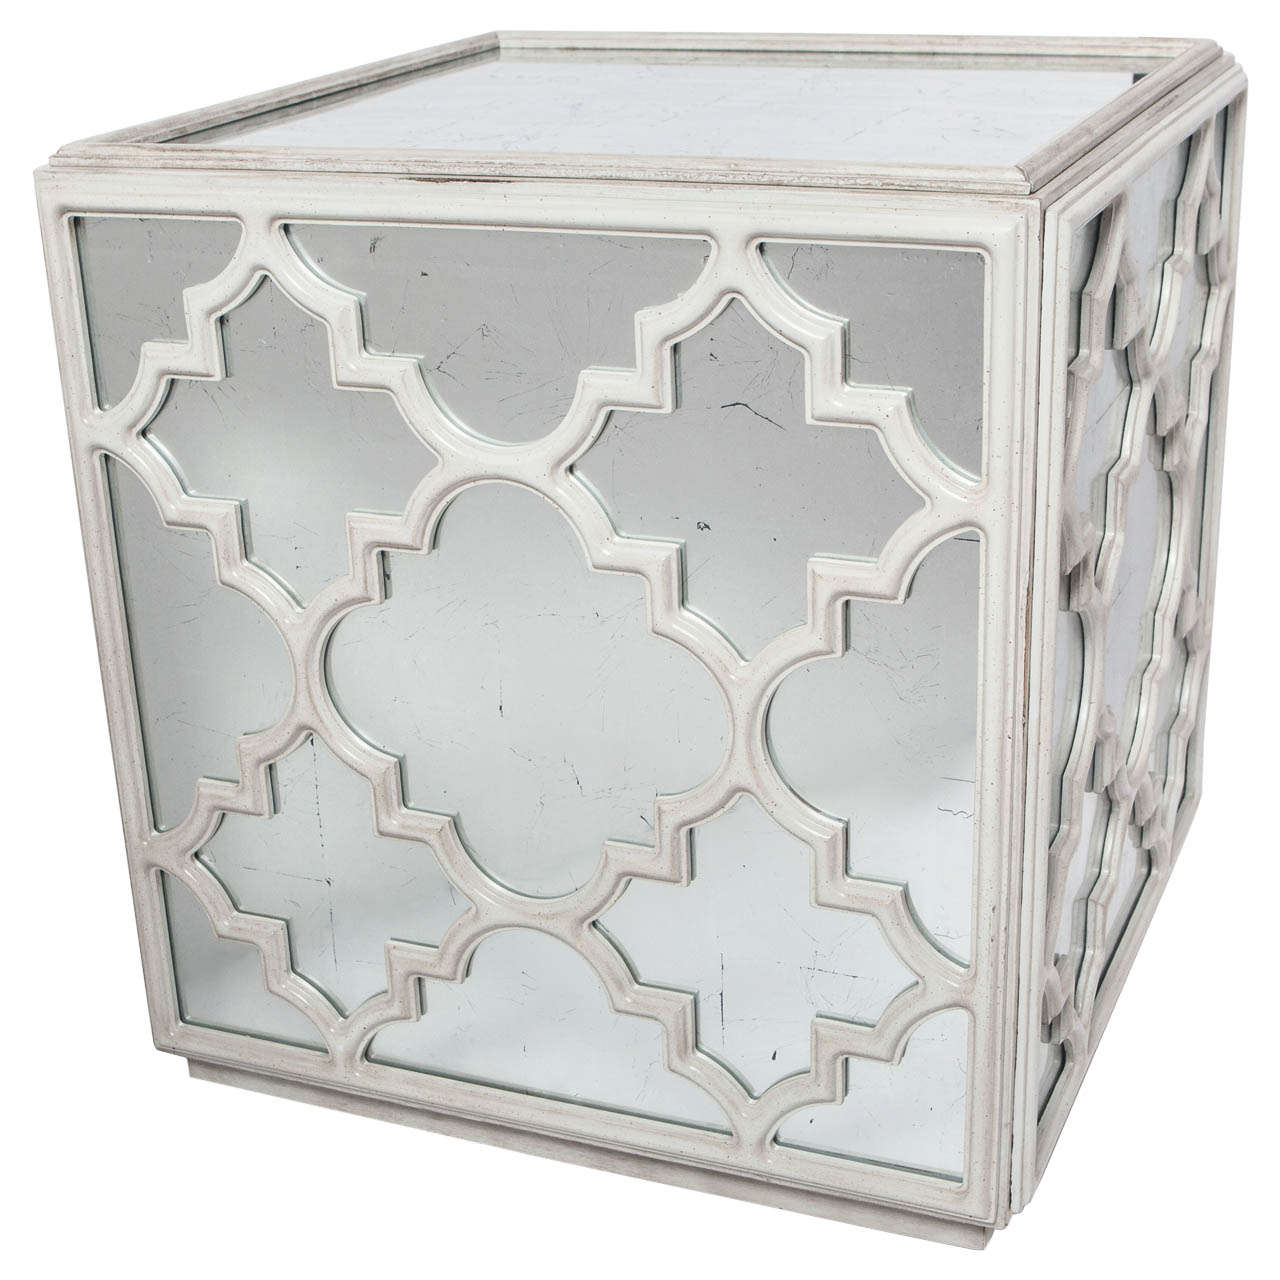 Mirrored Cube Coffee Or End Table At Stdibs - Mirrored cube end table